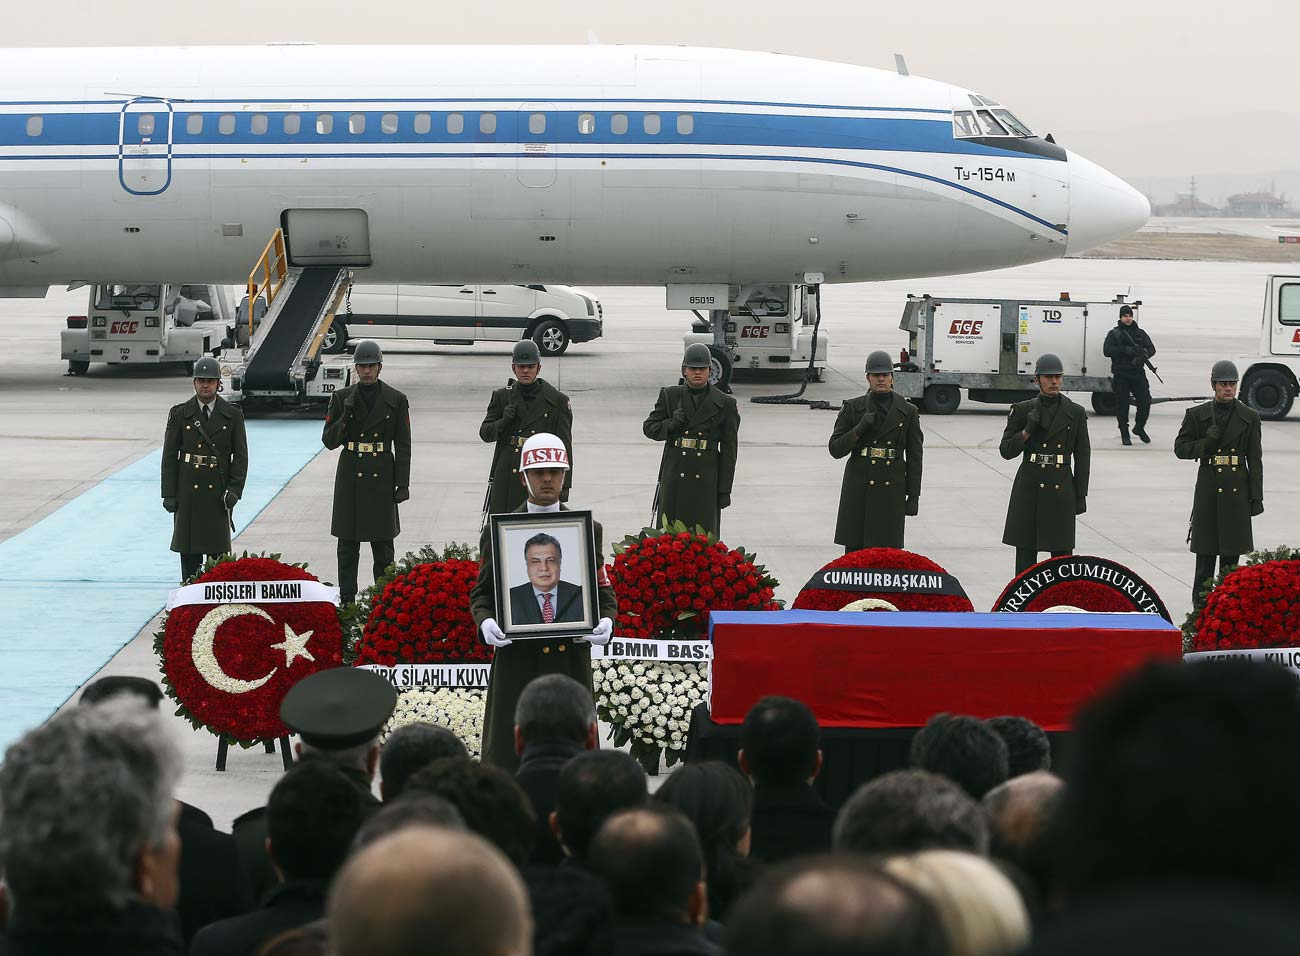 Farewell ceremony with Russian Ambassador Andrei Karlov in Turkey in Ankara airport